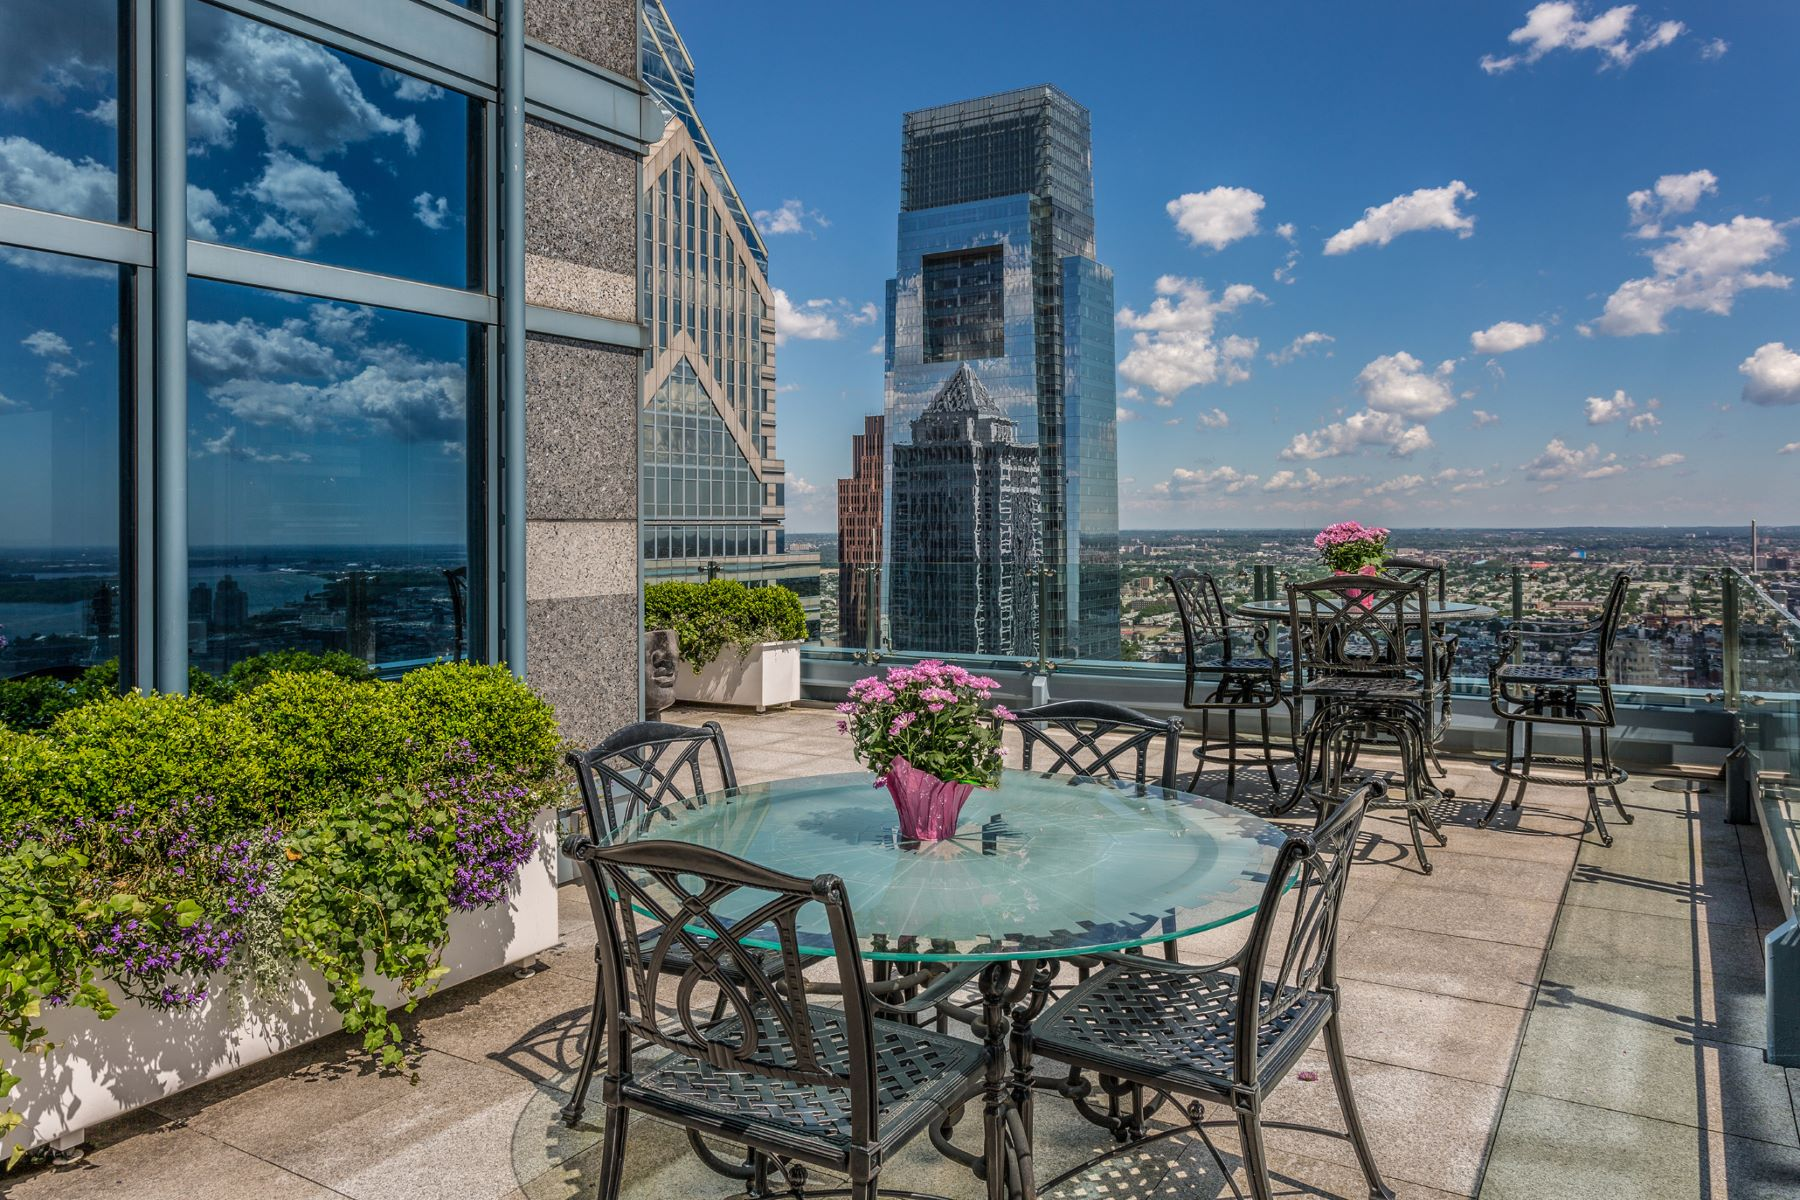 for Sale at Two Liberty Residence 50 S 16TH ST #4604 4604 Philadelphia, 19102 United States